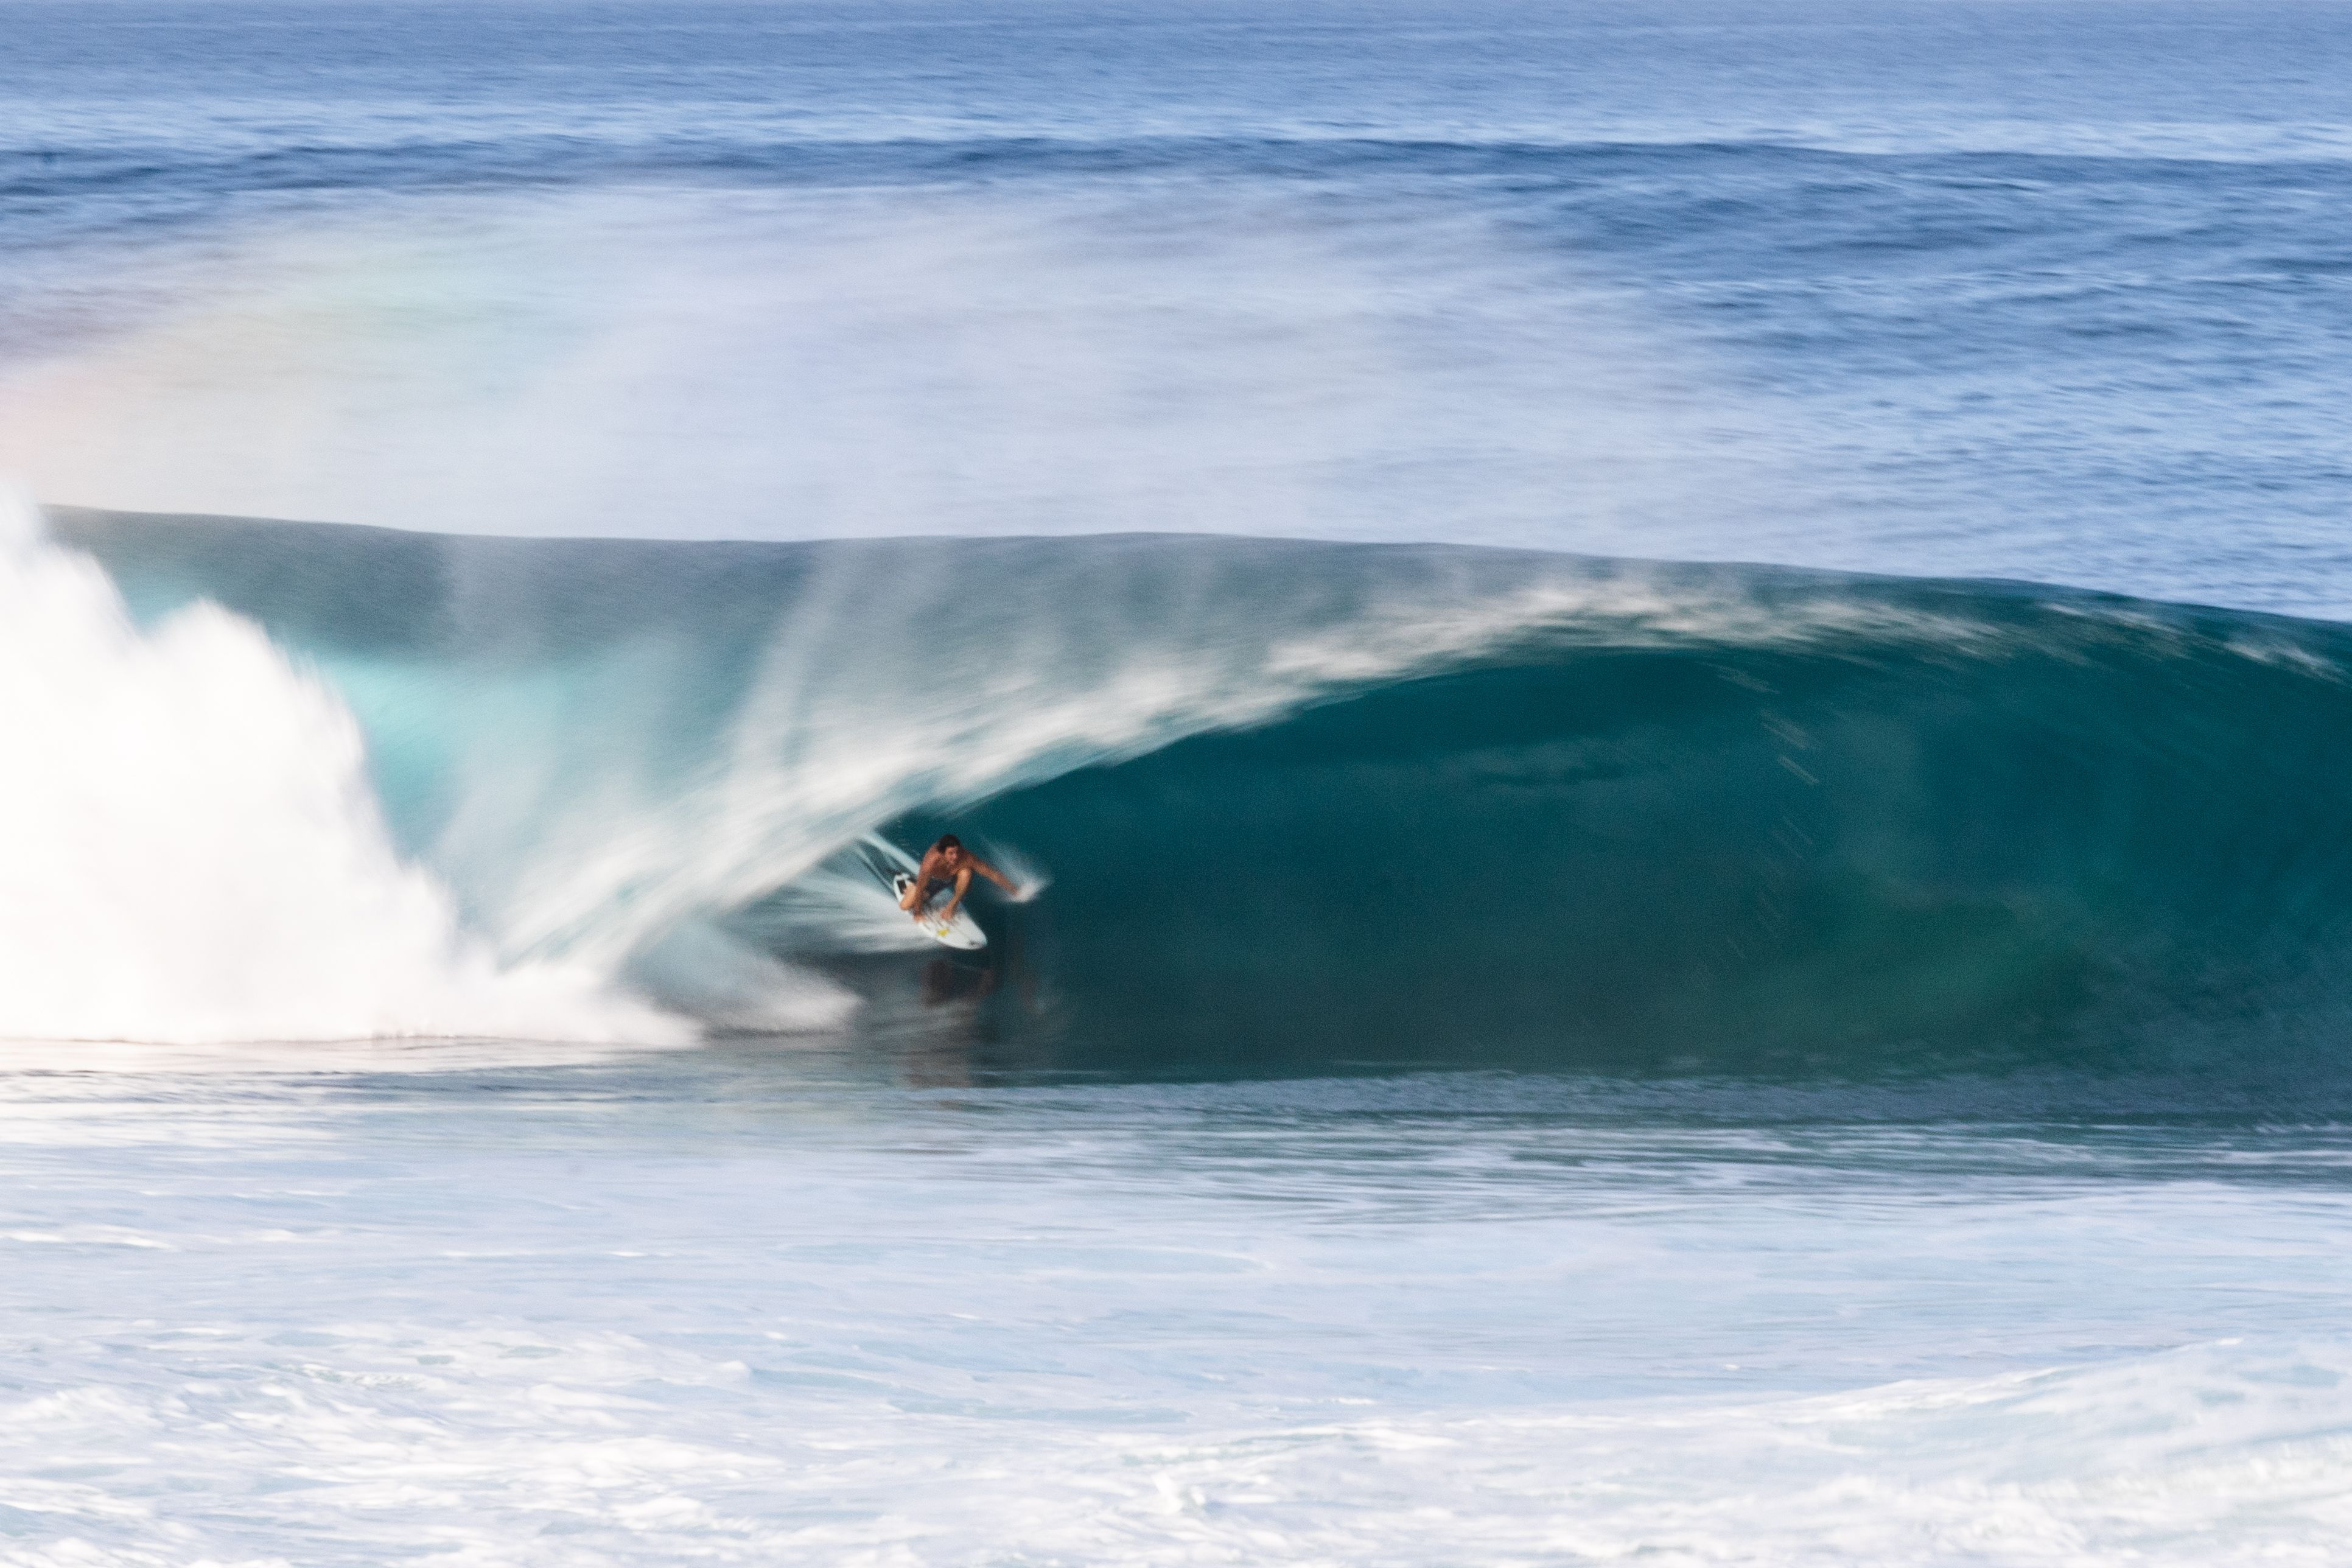 Cor Surf Team Rider Reef Mcintosh At Home On The North Shore Of Hawaii At Pipeline Surf Surfing Pipeline Northsho In 2020 Surfing Photography Surfing 2020 Olympics